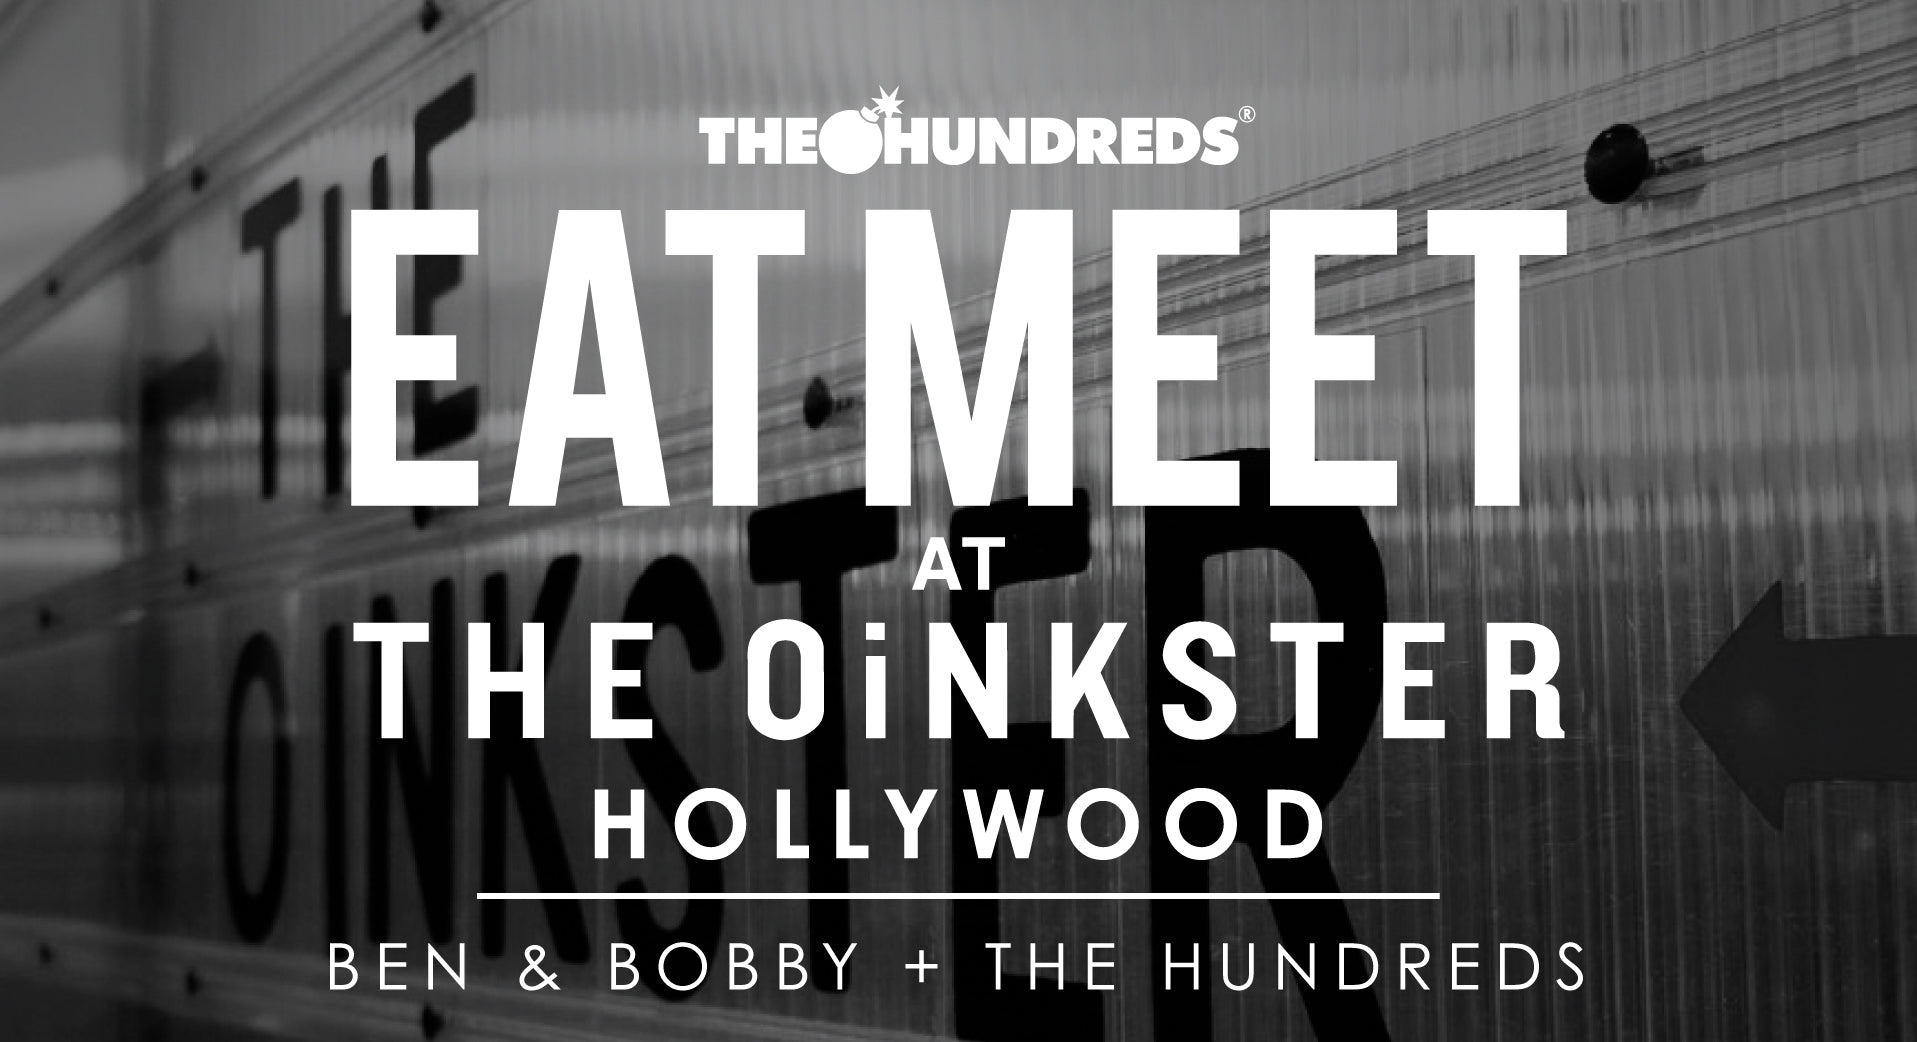 Buy Tickets Now for #TheHundredsEatMeet at The Oinkster, Tuesday 4/14